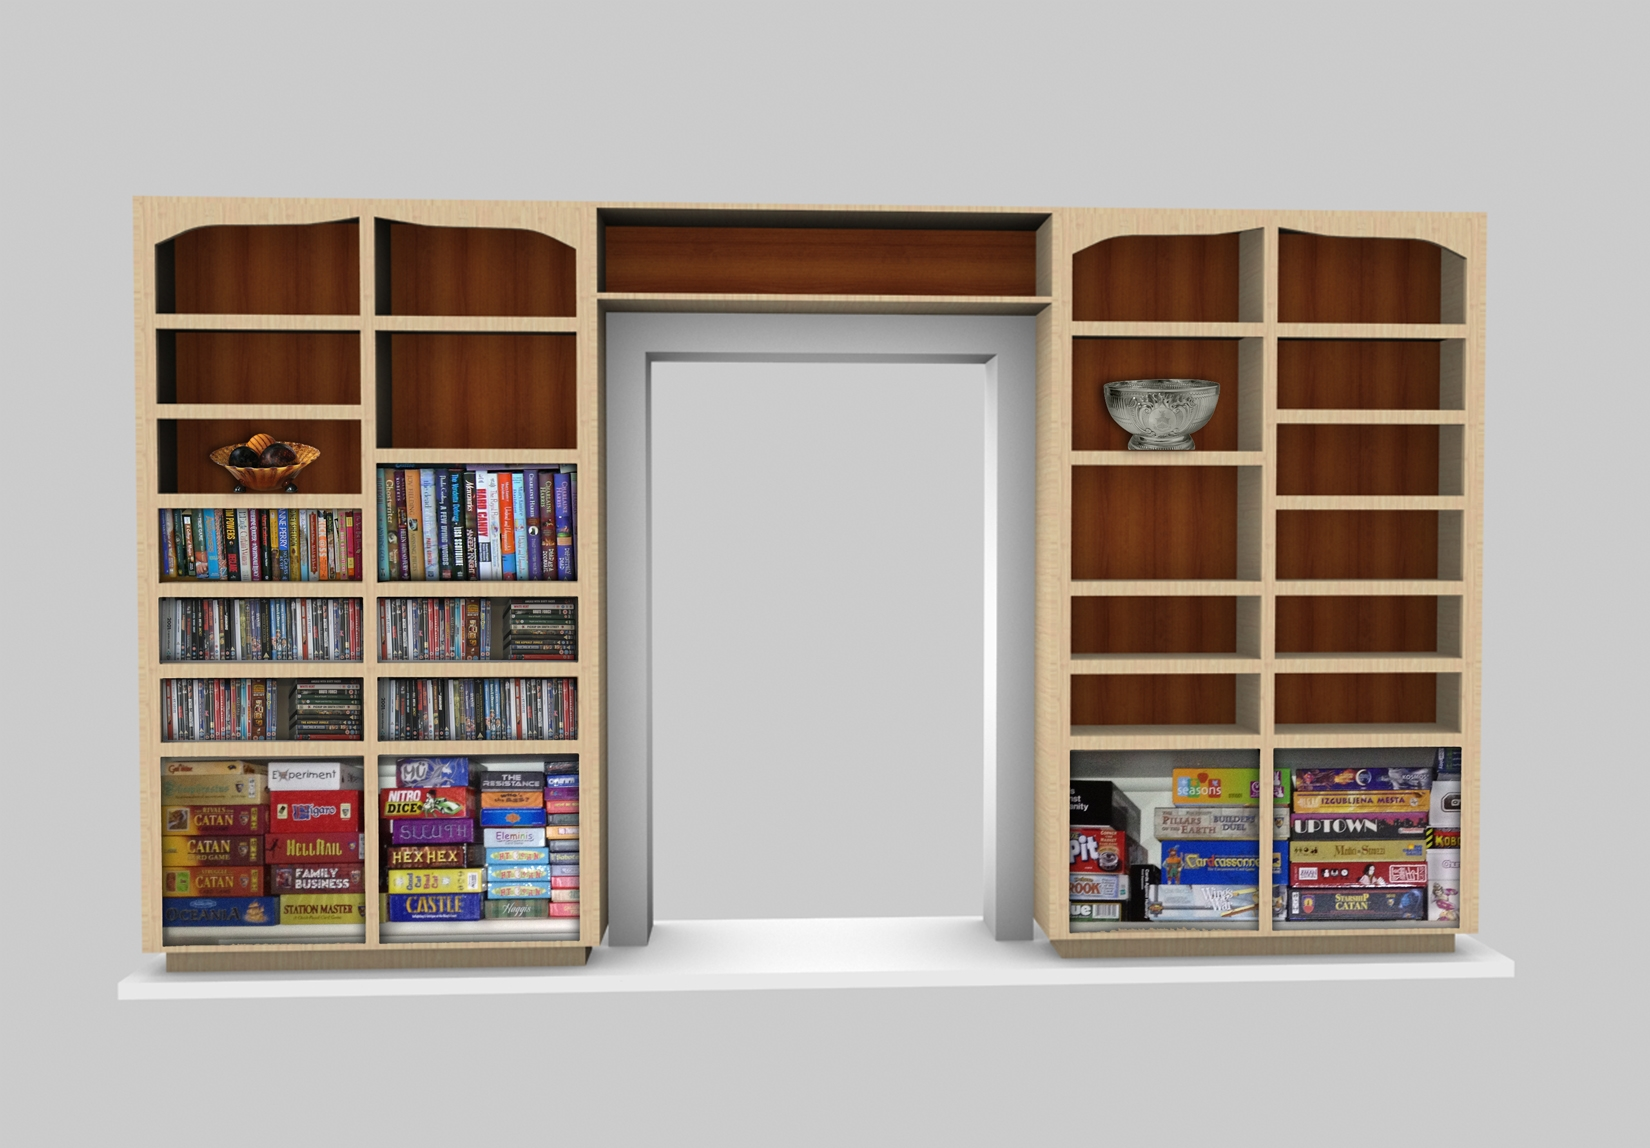 Cabinet Design Software Sketchlist 3d Rendering Very Realistic For Book Cabinet Design (Image 6 of 15)